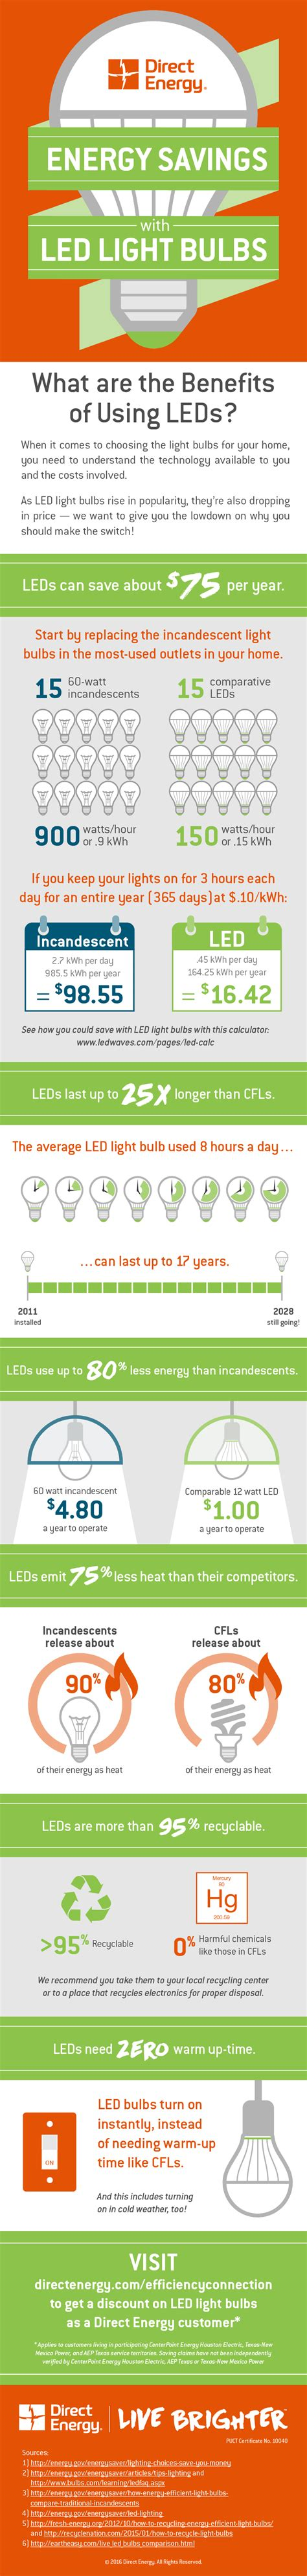 led light bulbs benefits what are the benefits of led light bulbs infographic